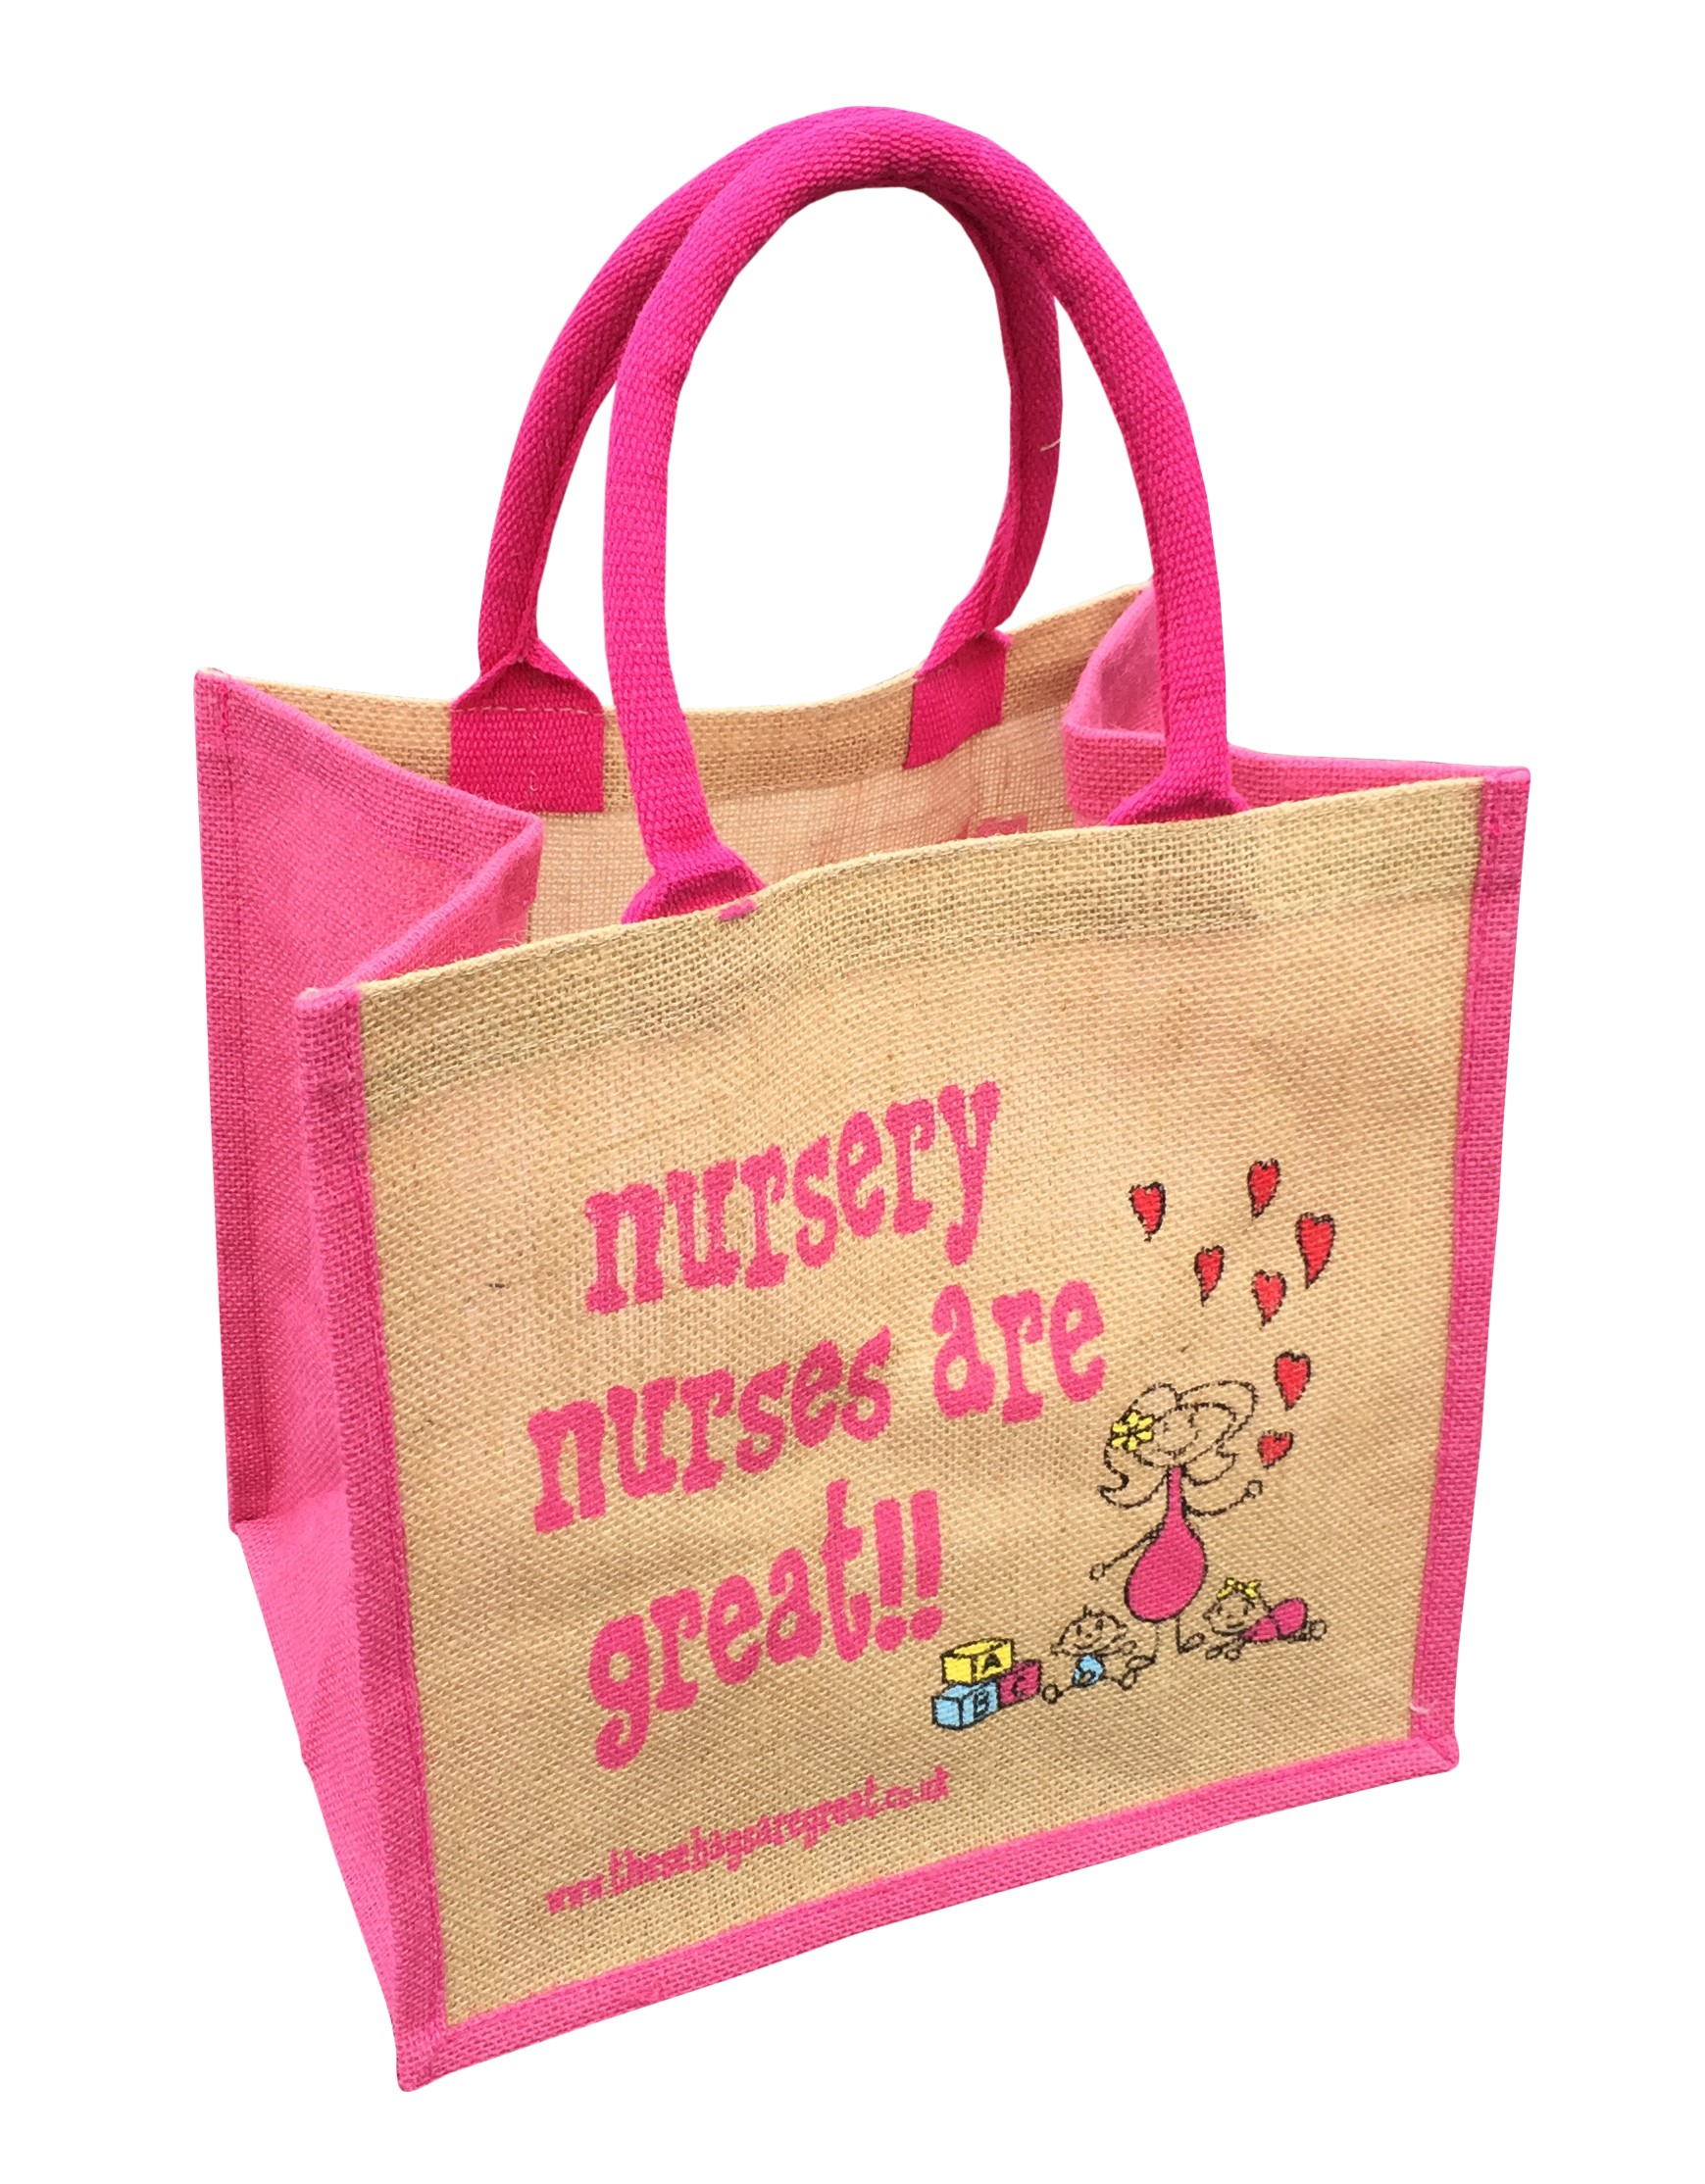 Nursery Nurses are Great Bag